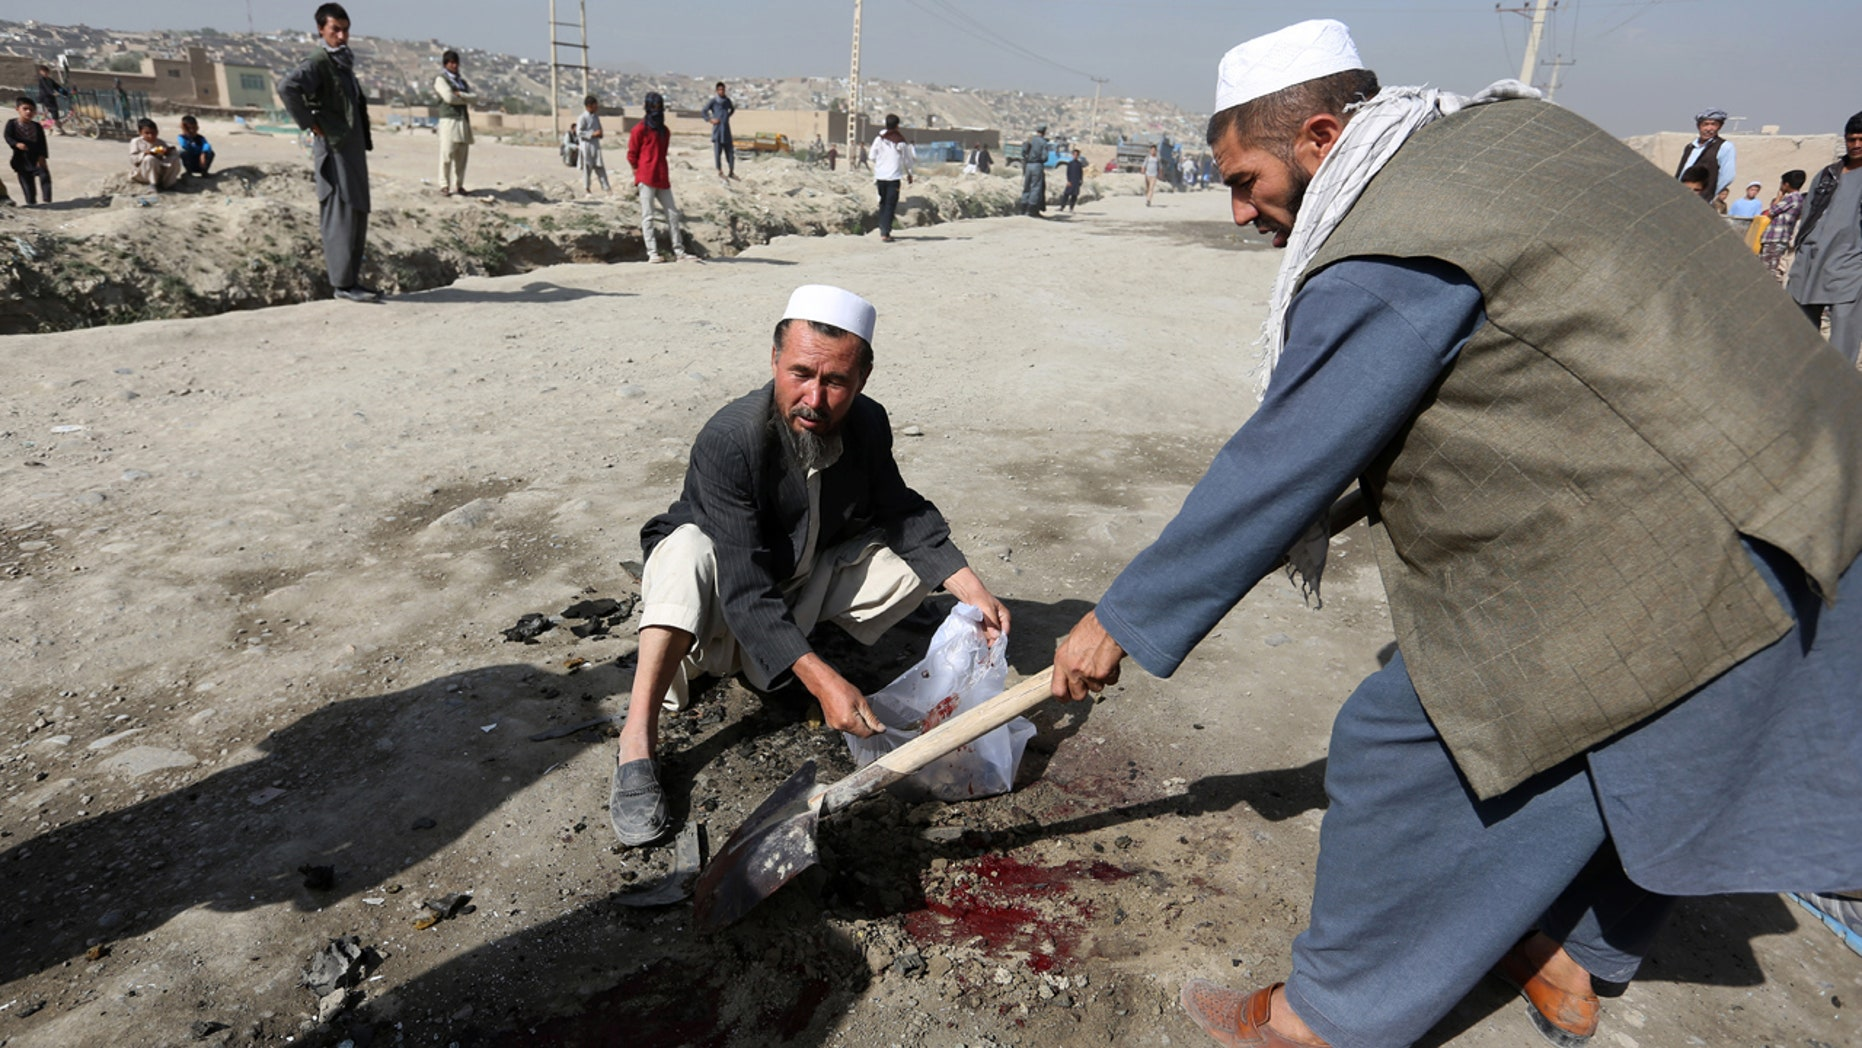 Aug. 20, 2016: Afghan men clean the site of a bomb blast on the outskirts of Kabul. A soldier was killed early Saturday by a sticky bomb placed on his vehicle, Kabul police said.